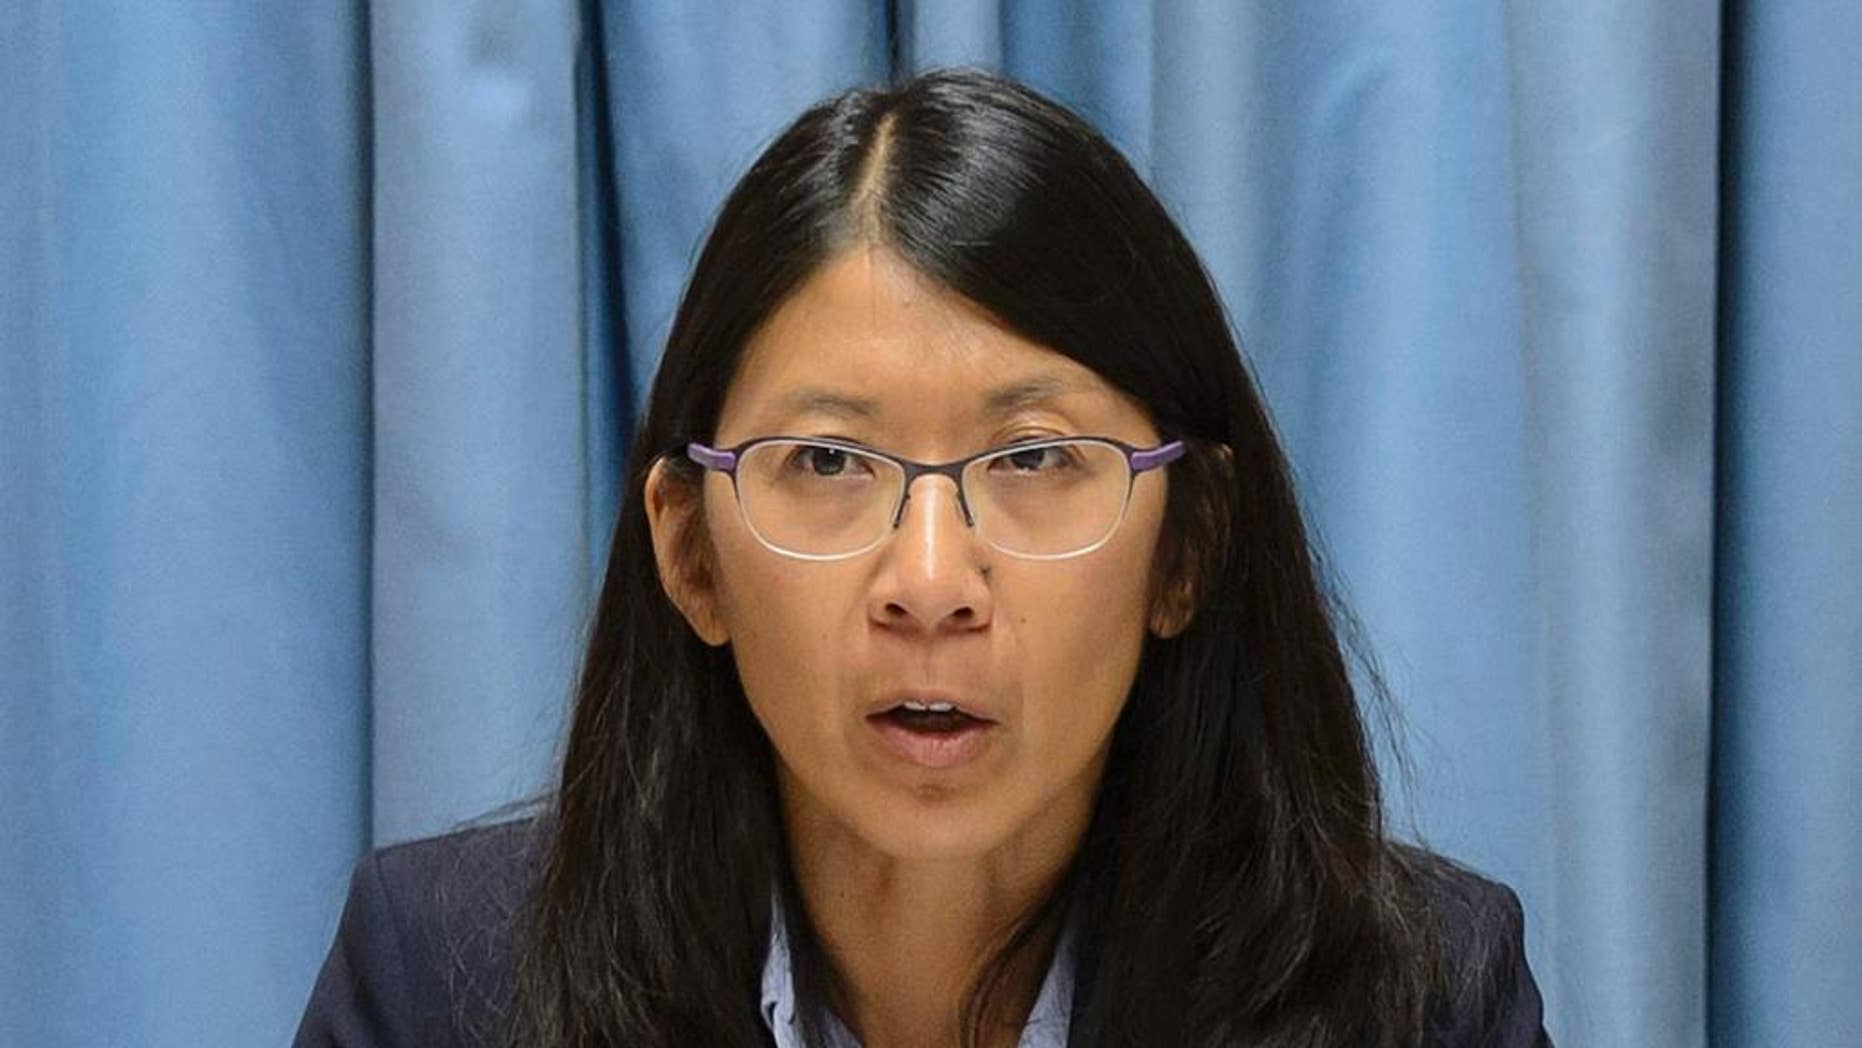 """Joanne Liu, President of Medecins Sans Frontieres, MSF, International, speaks during a news conference on the US air strike on a hospital in Kunduz, Afghanistan, in Geneva, Switzerland, Wednesday, Oct. 7, 2015. Liu, told reporters that the weekend strike """"was not just an attack on our hospital, it was an attack on the Geneva Conventions. This cannot be tolerated."""" (Martial Trezzini/Keystone via AP)"""